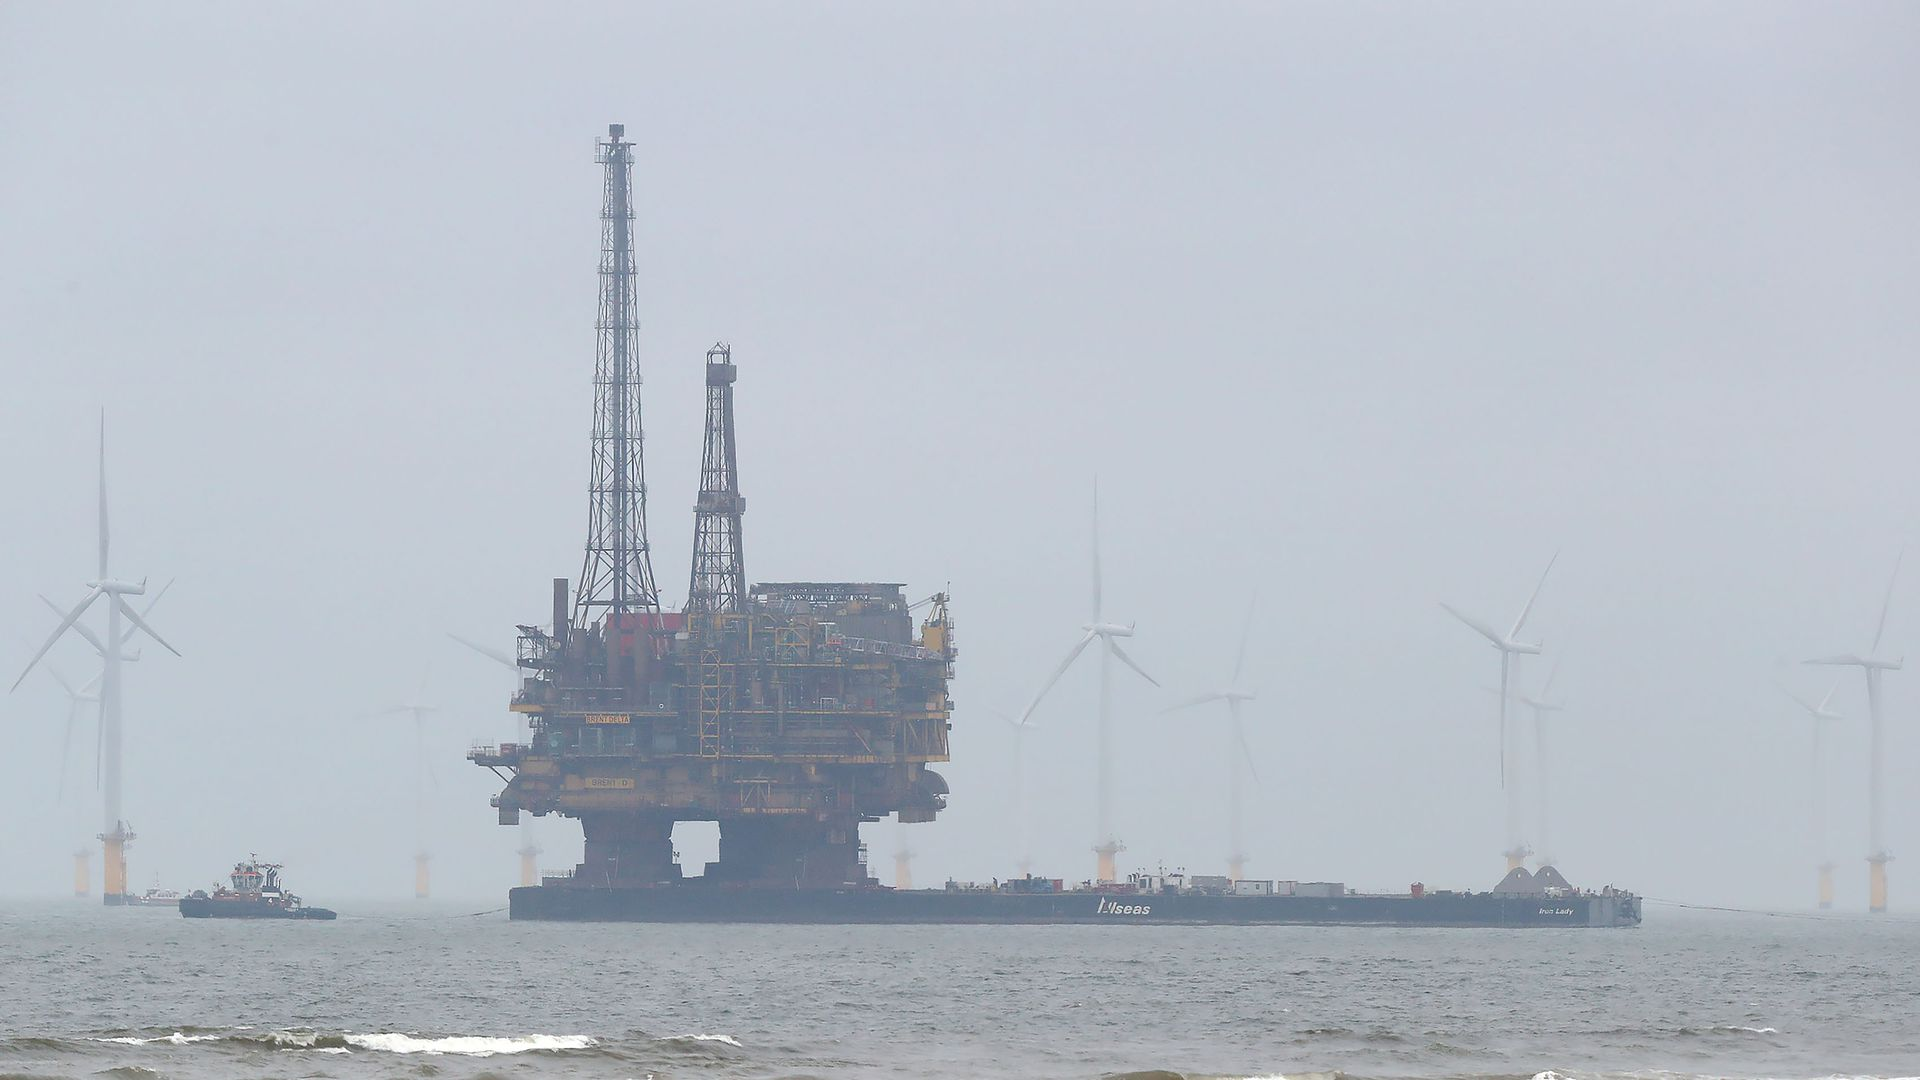 Shell oil rig surrounded by wind turbines